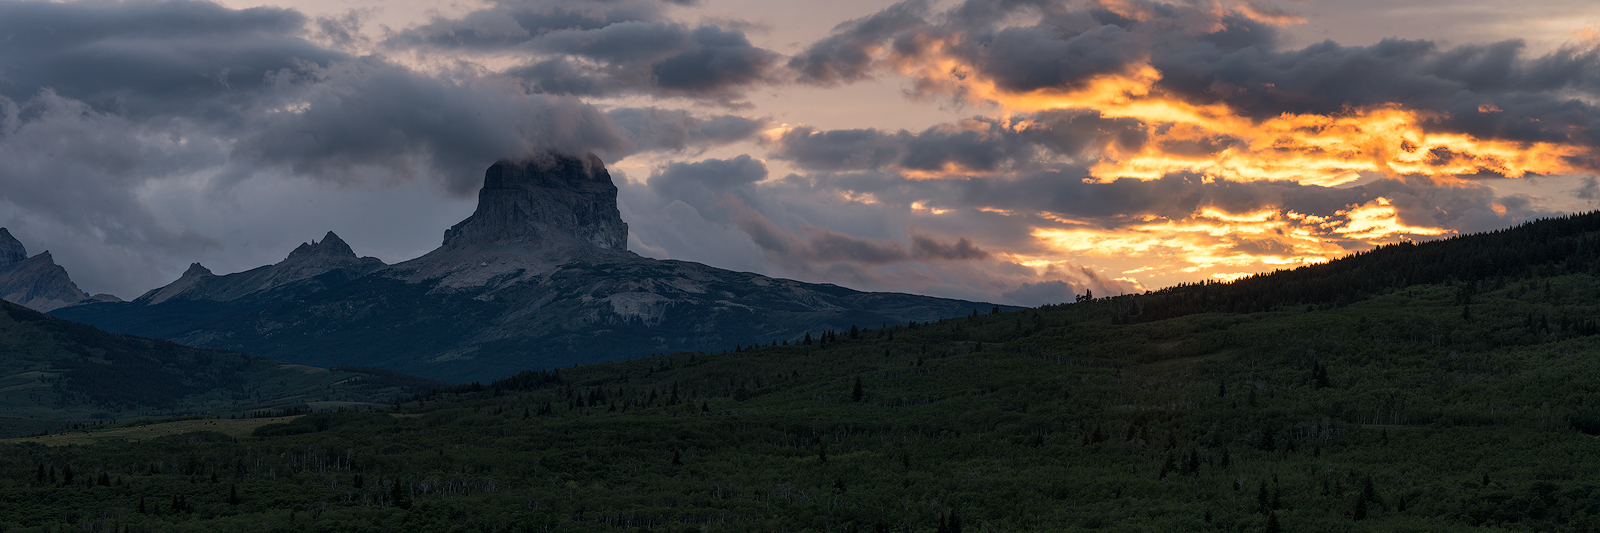 Glacier, Montana, Chief Mountain, Sunset, Dramatic Skies, Bernard Chen, East Glacier, Babb, photo